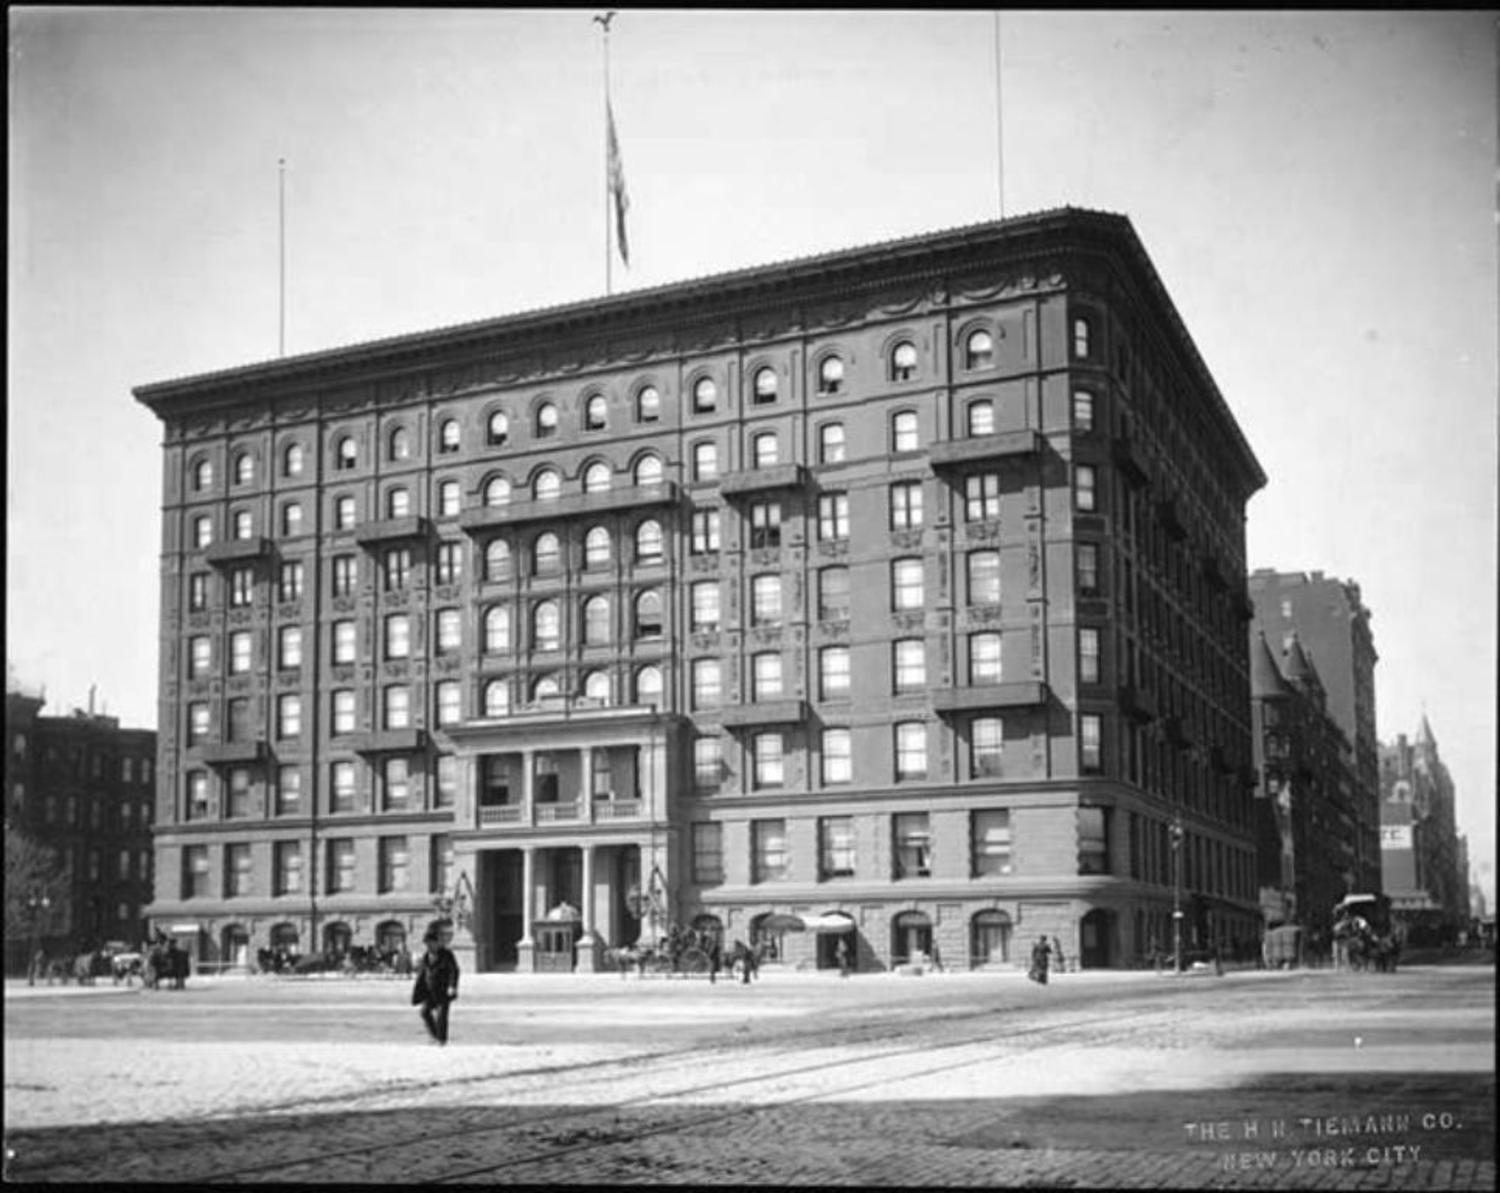 The original Plaza Hotel